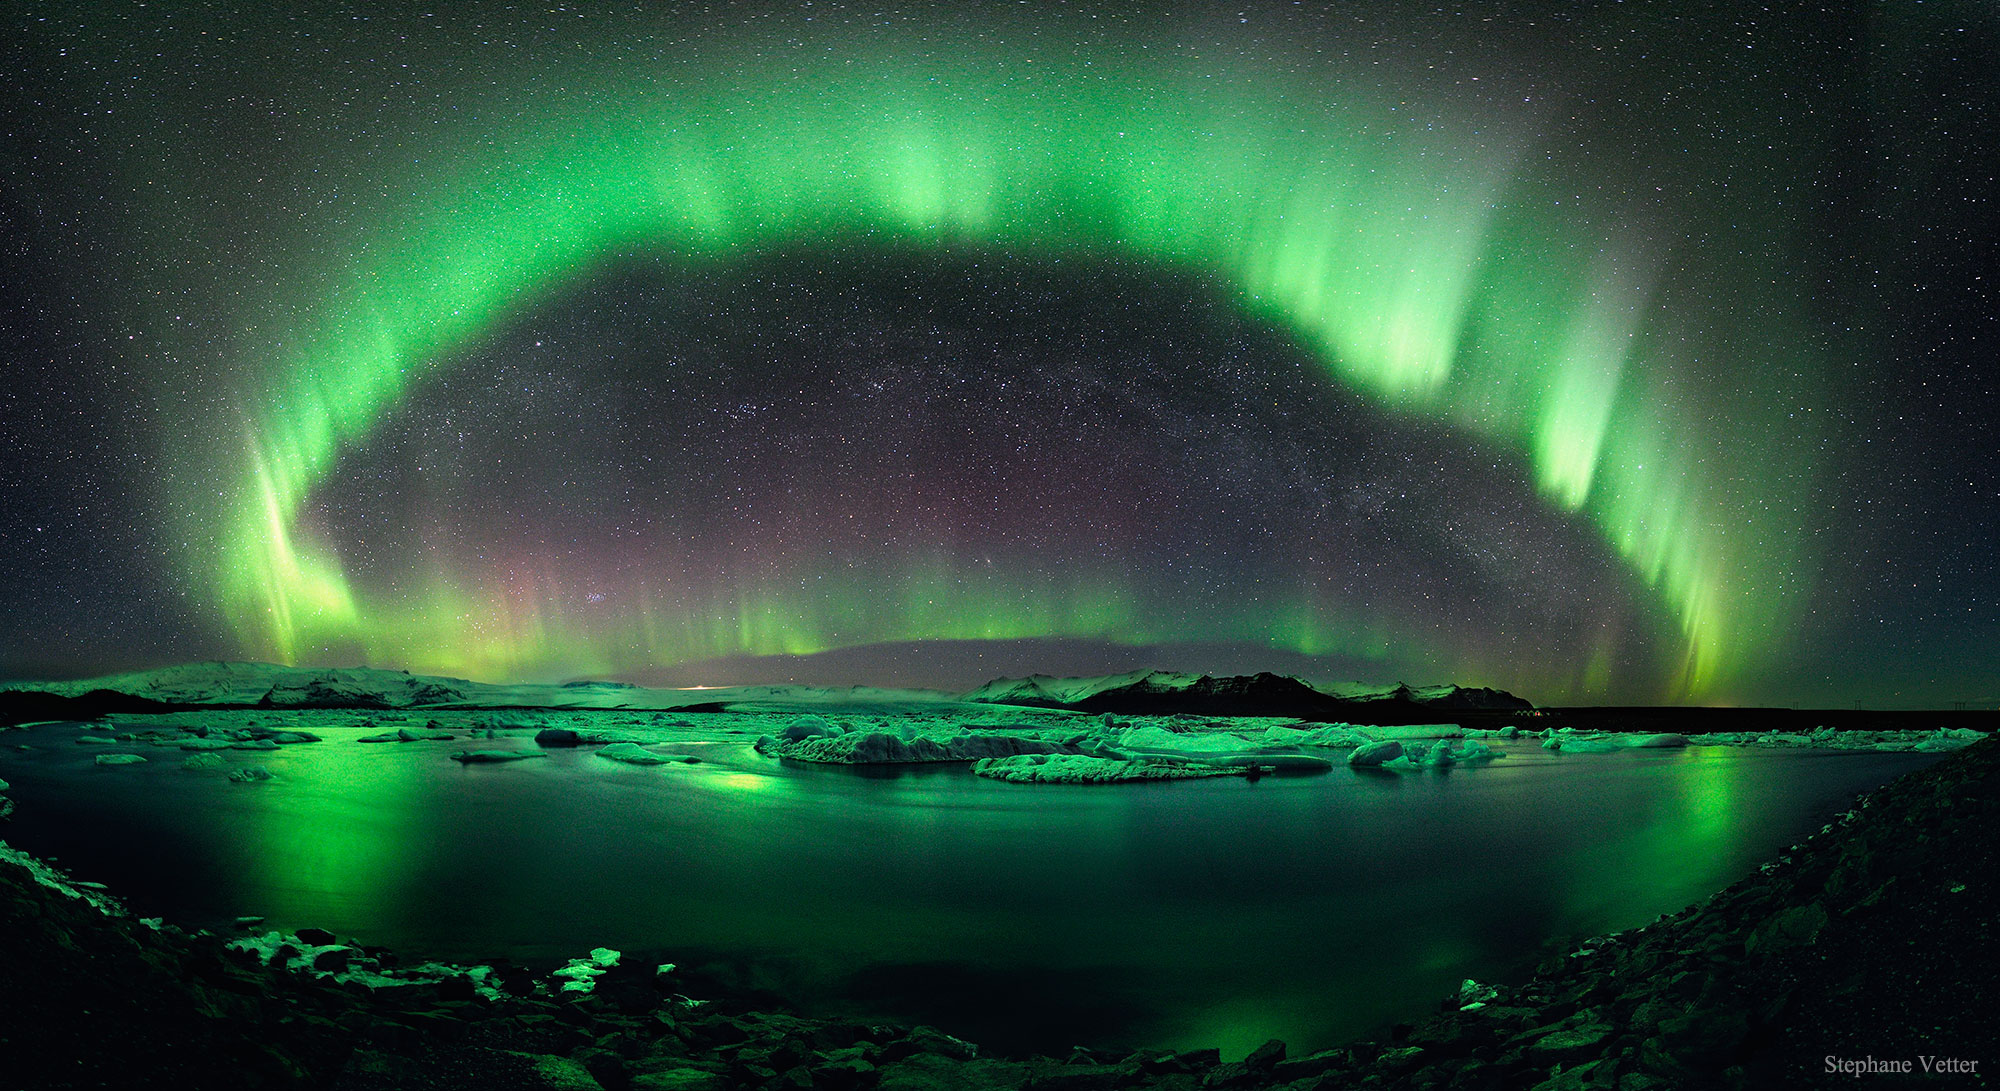 2016 January 3 - A Starry Night of Iceland